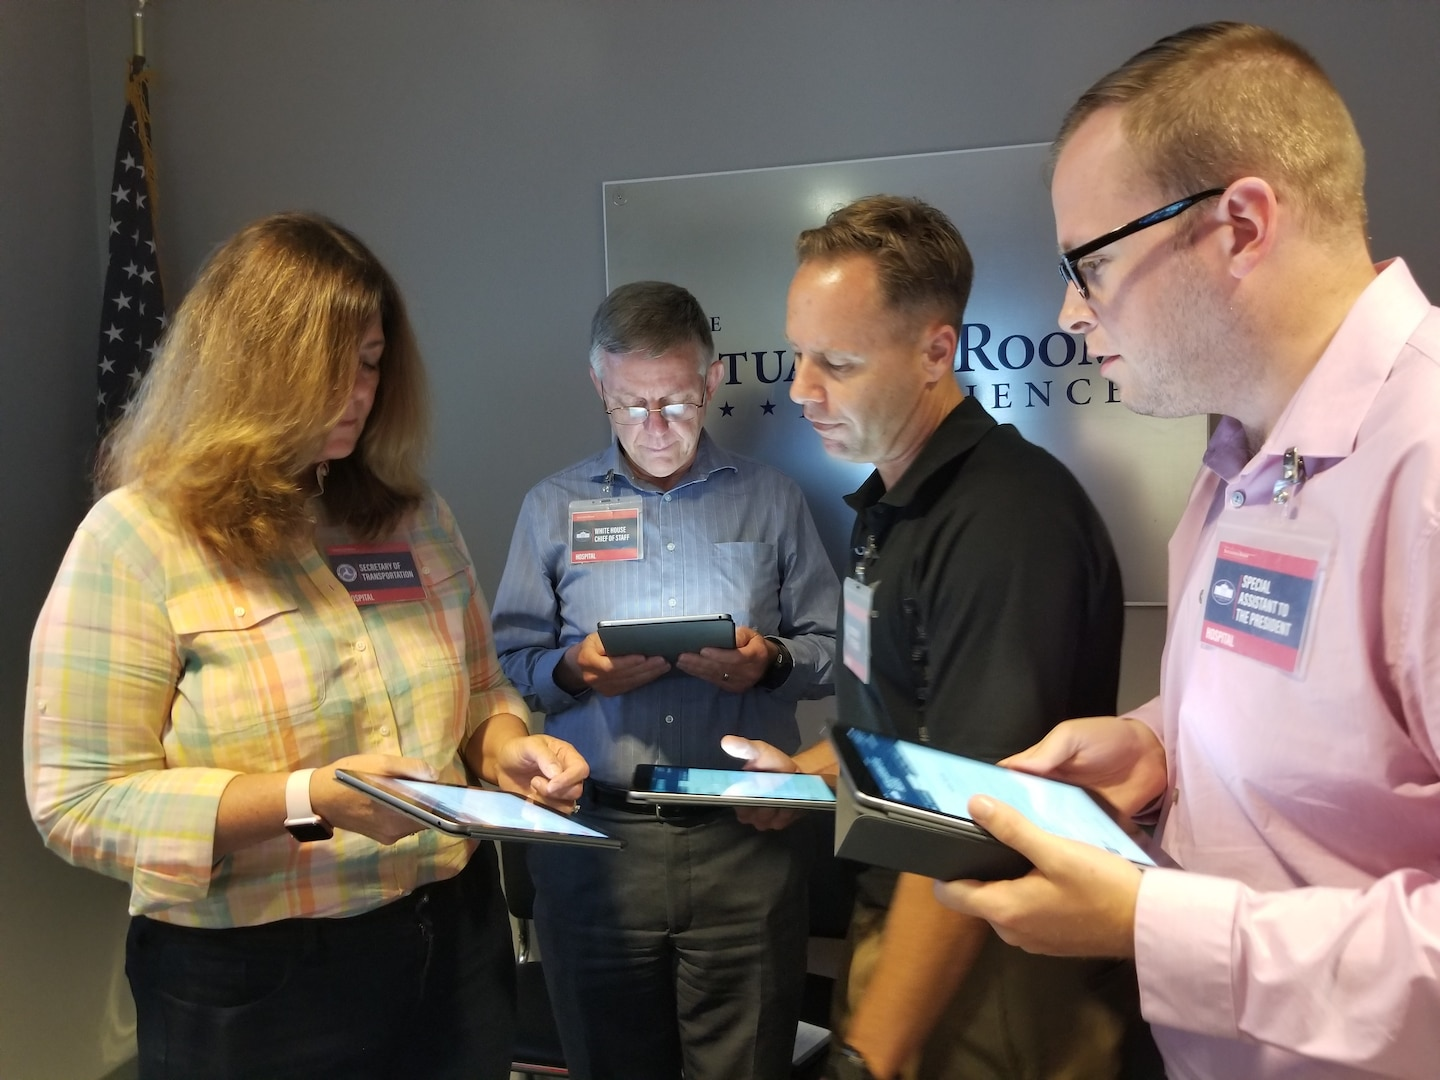 Four people standing in a semi-circle use tablets during a workshop